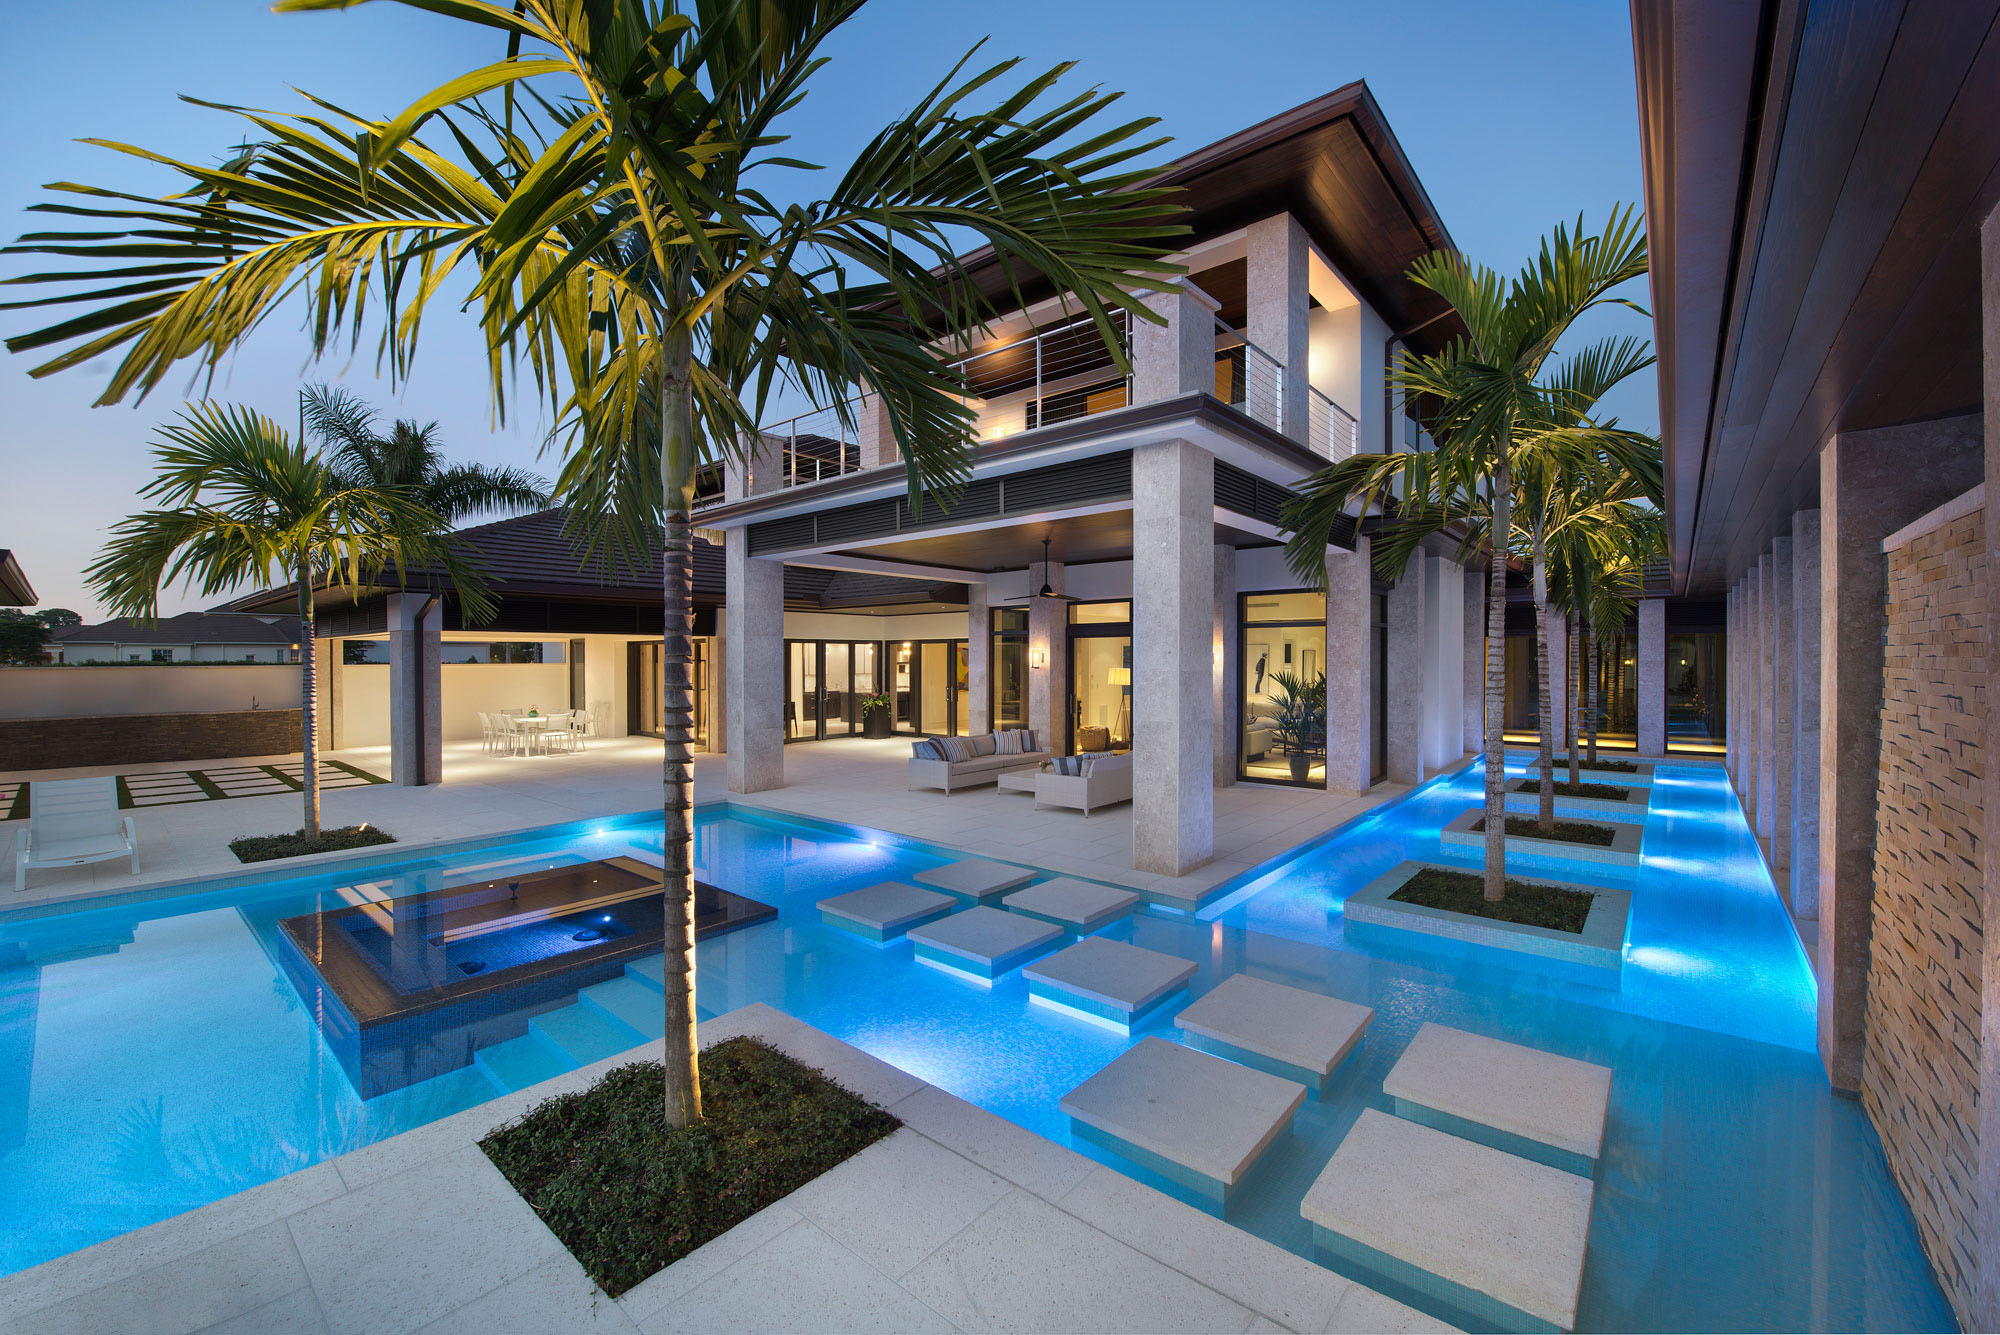 Custom dream home in florida with elegant swimming pool for House design with swimming pool